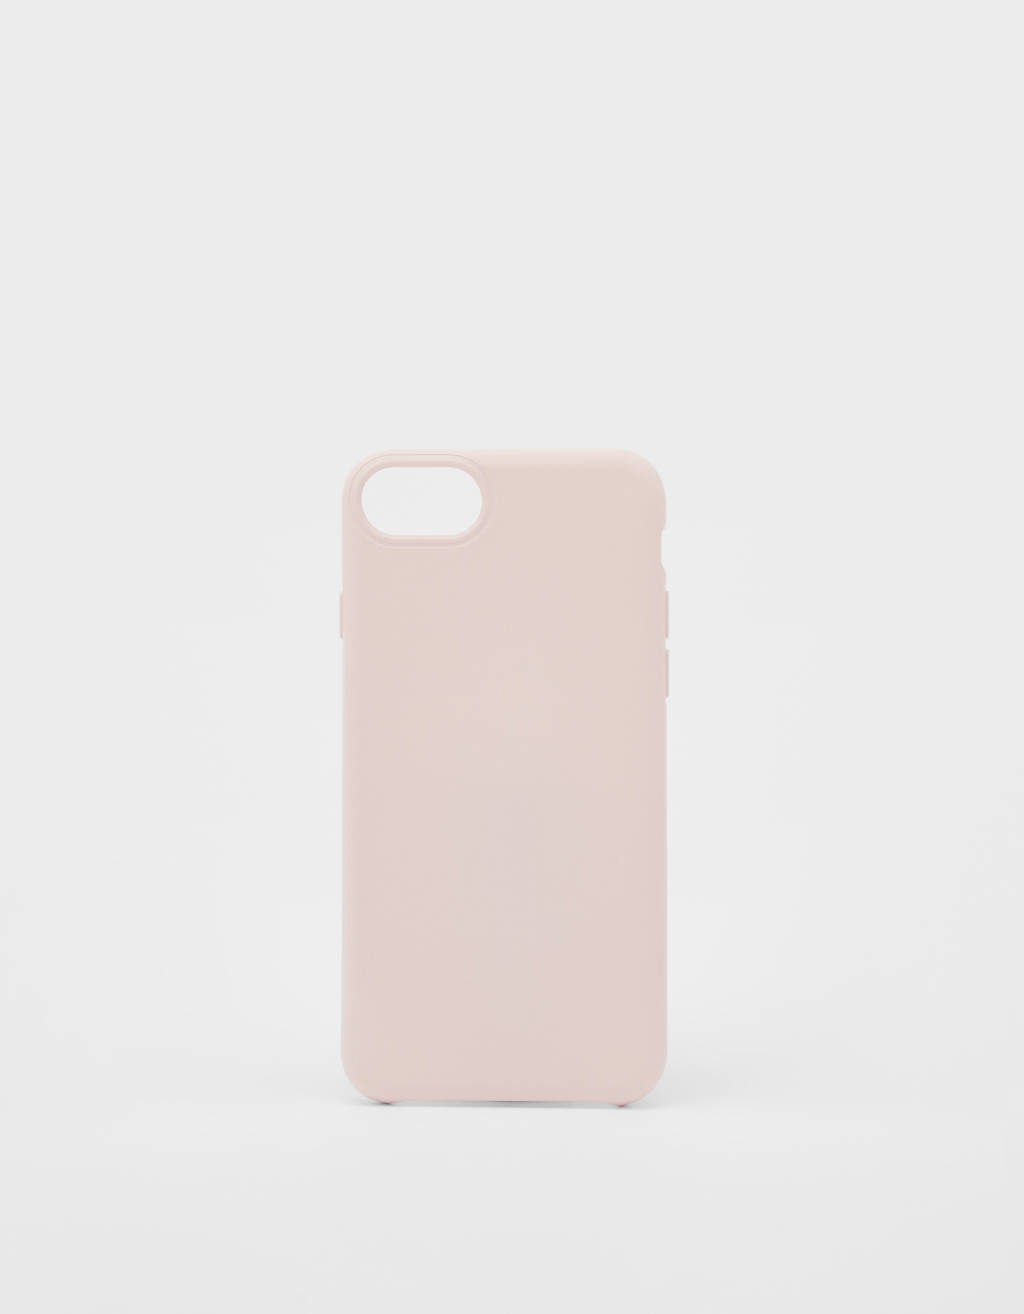 Carcassa color llis iPhone 6/6S/7/8